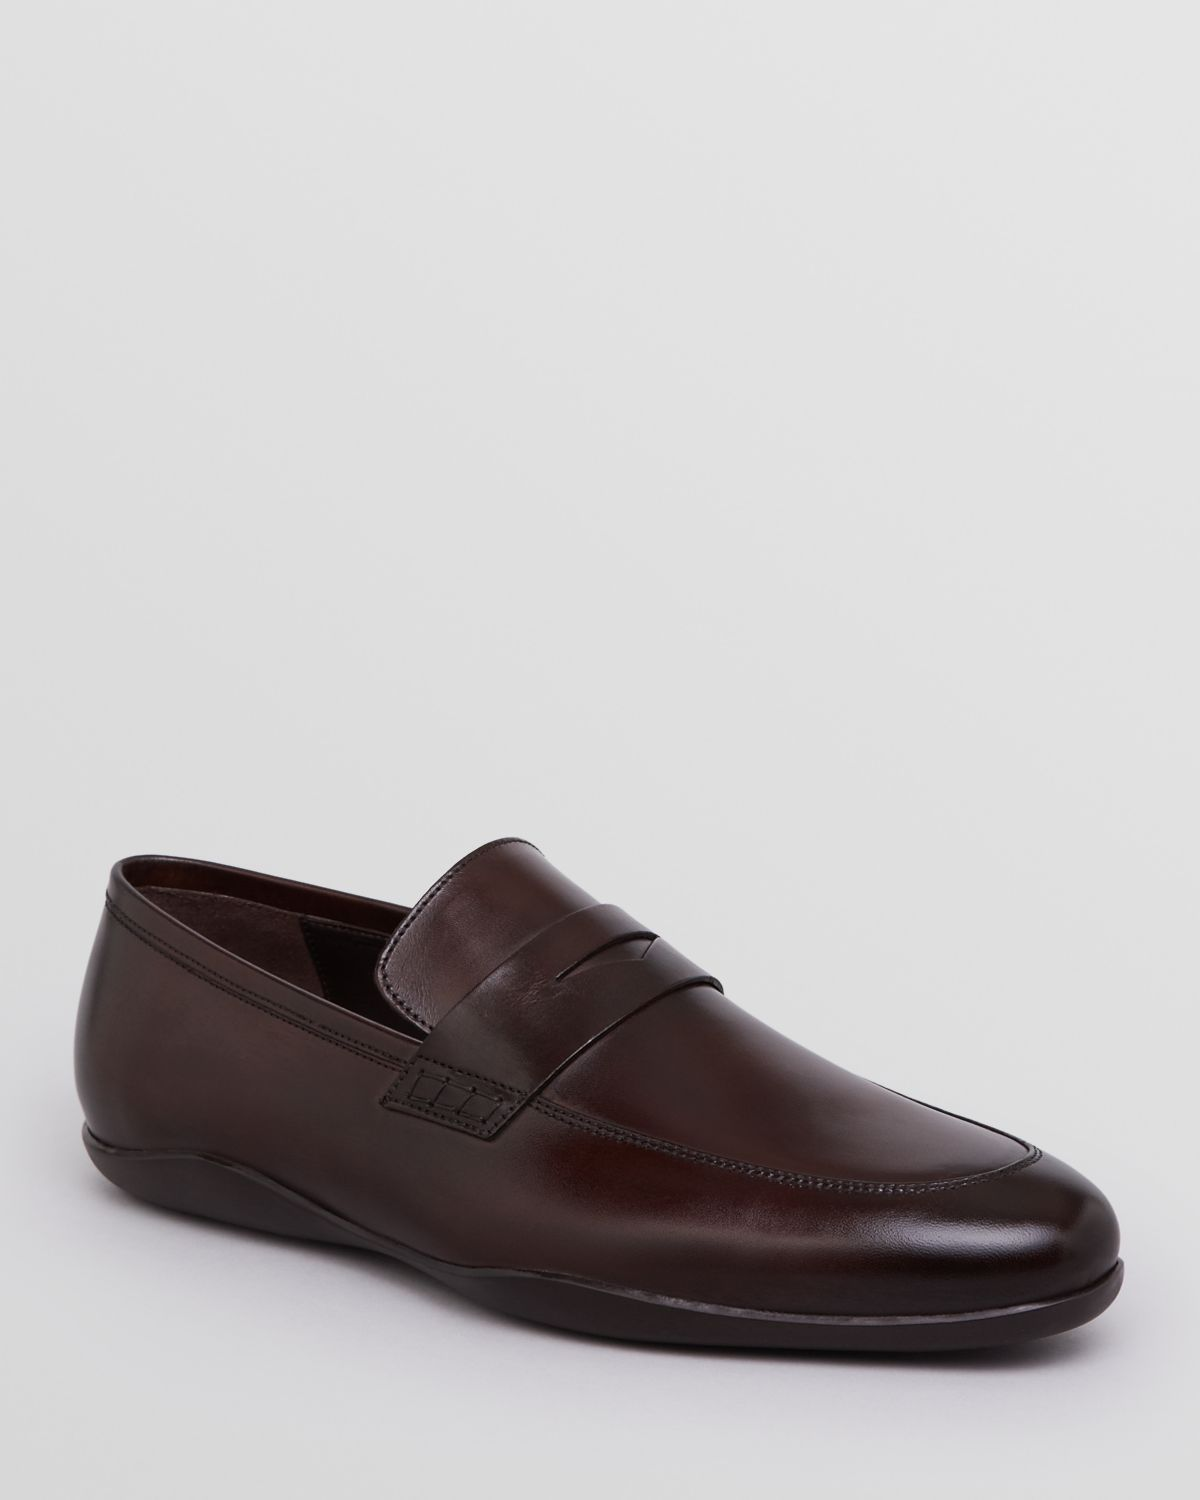 c0d8d16e334 Lyst - Harry s Of London Downing Leather Penny Loafers in Brown for Men